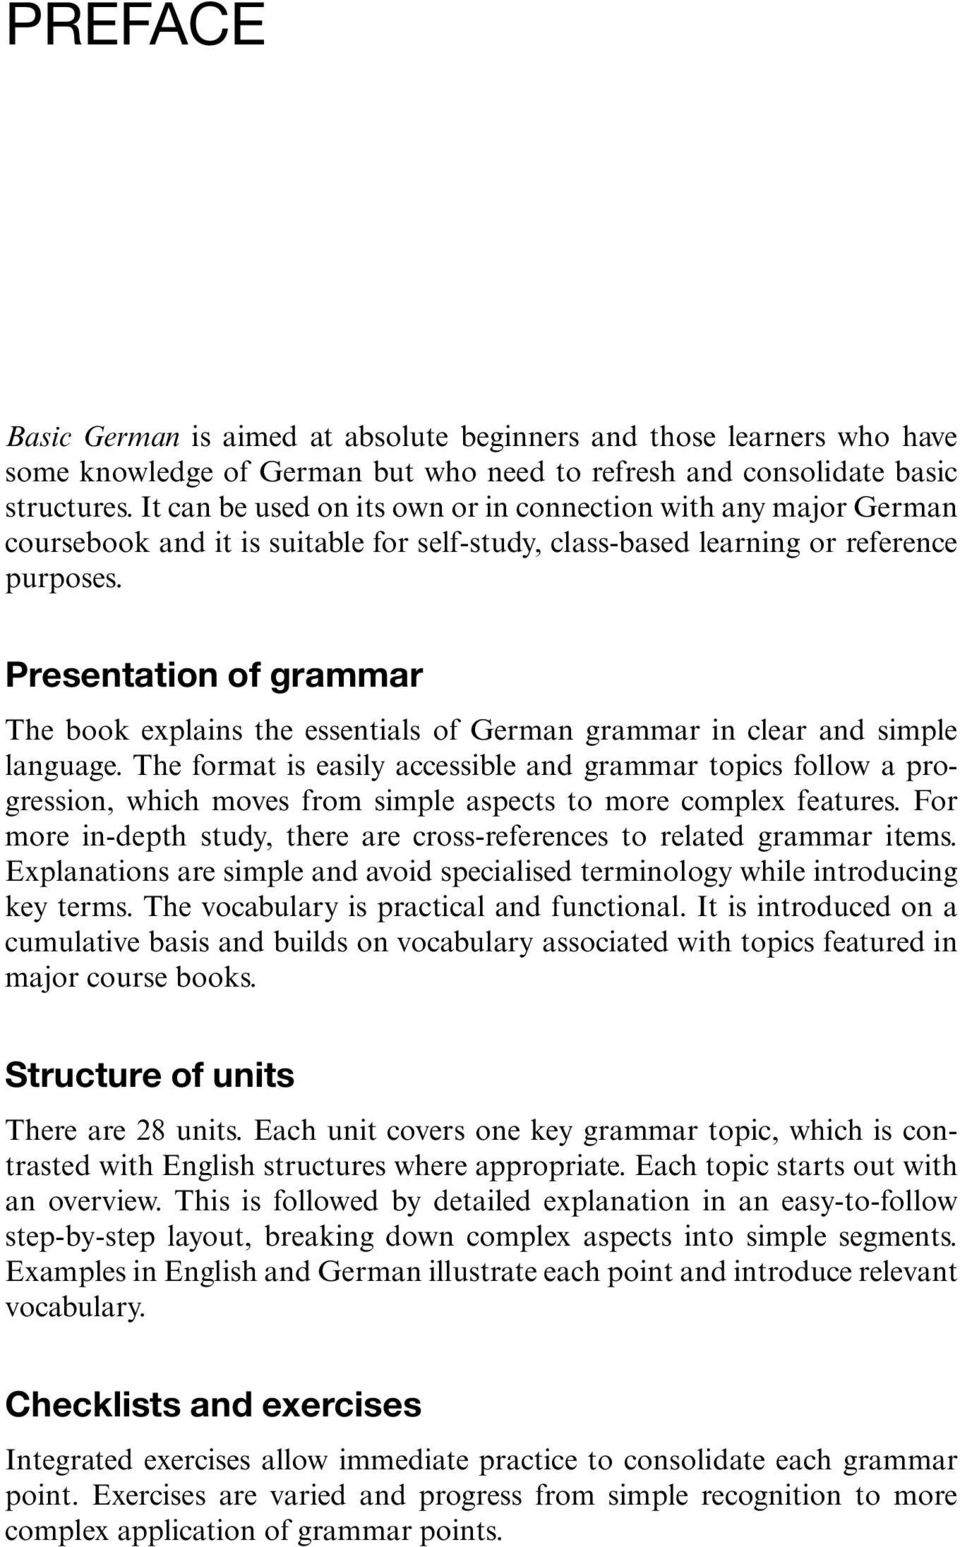 Basic german a grammar and workbook pdf presentation of grammar the book explains the essentials of german grammar in clear and simple language kristyandbryce Choice Image